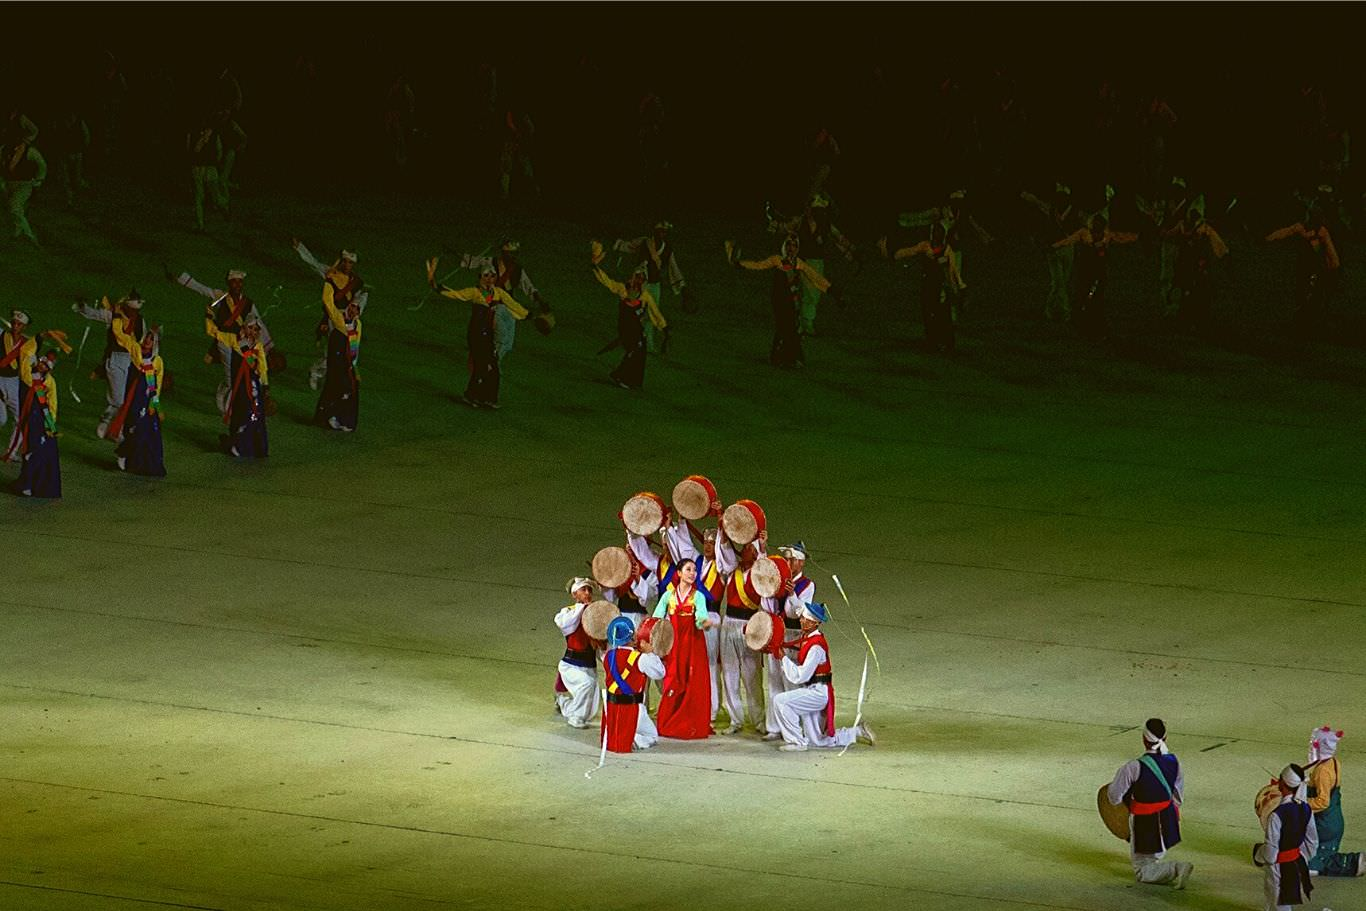 Artistic performance during the Mass Games held in Pyongyang, capital of North Korea aka DPRK. Tour arranged by KTG